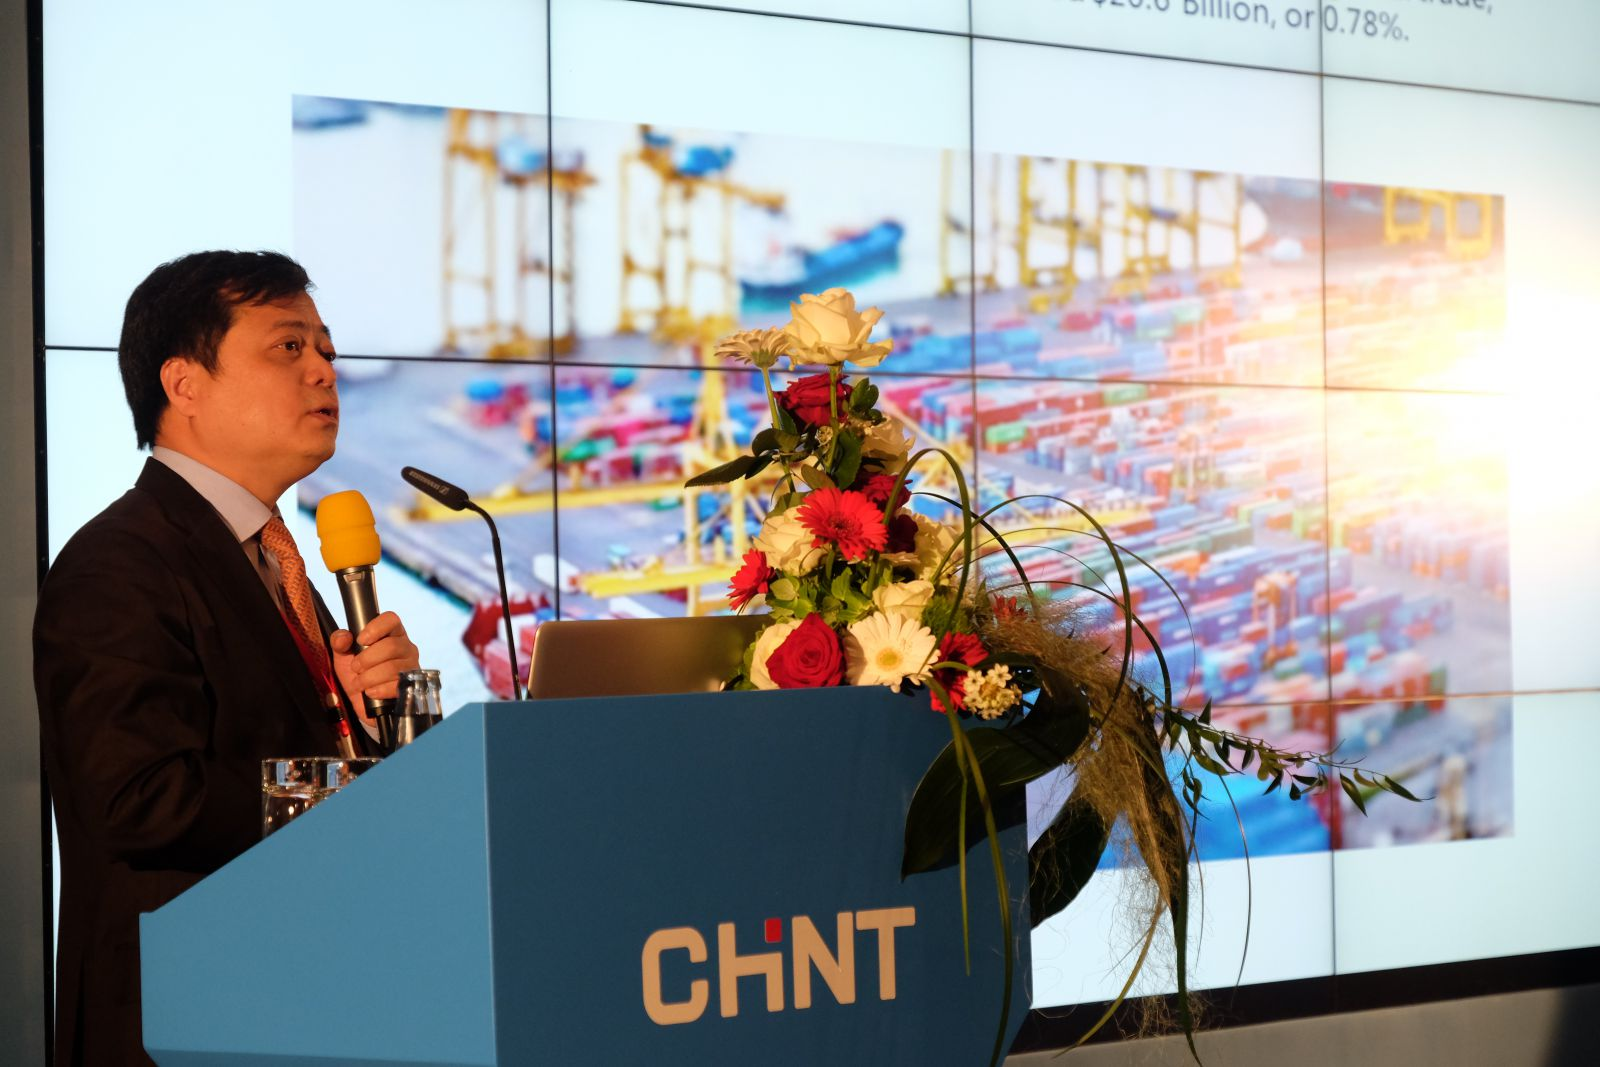 CHINT Electric marketing conference